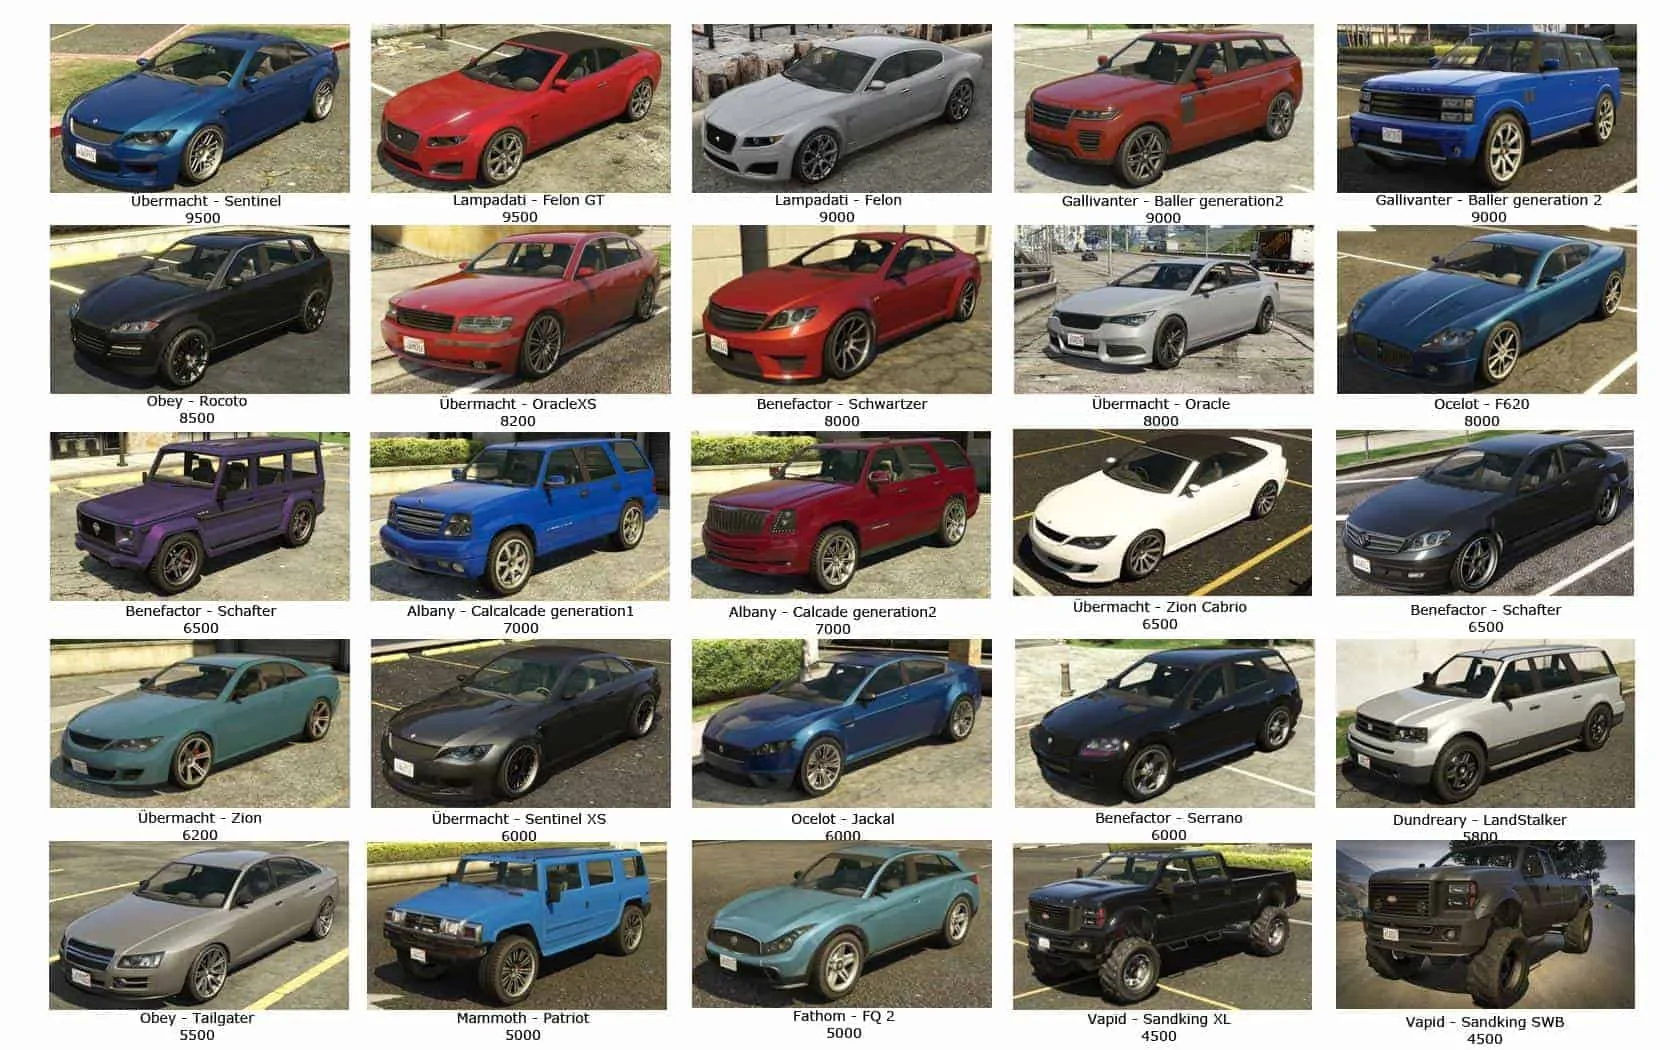 Gta 5 Cars List Online Images & Pictures - Becuo Ubermacht Sentinel Xs Gta 5 Location